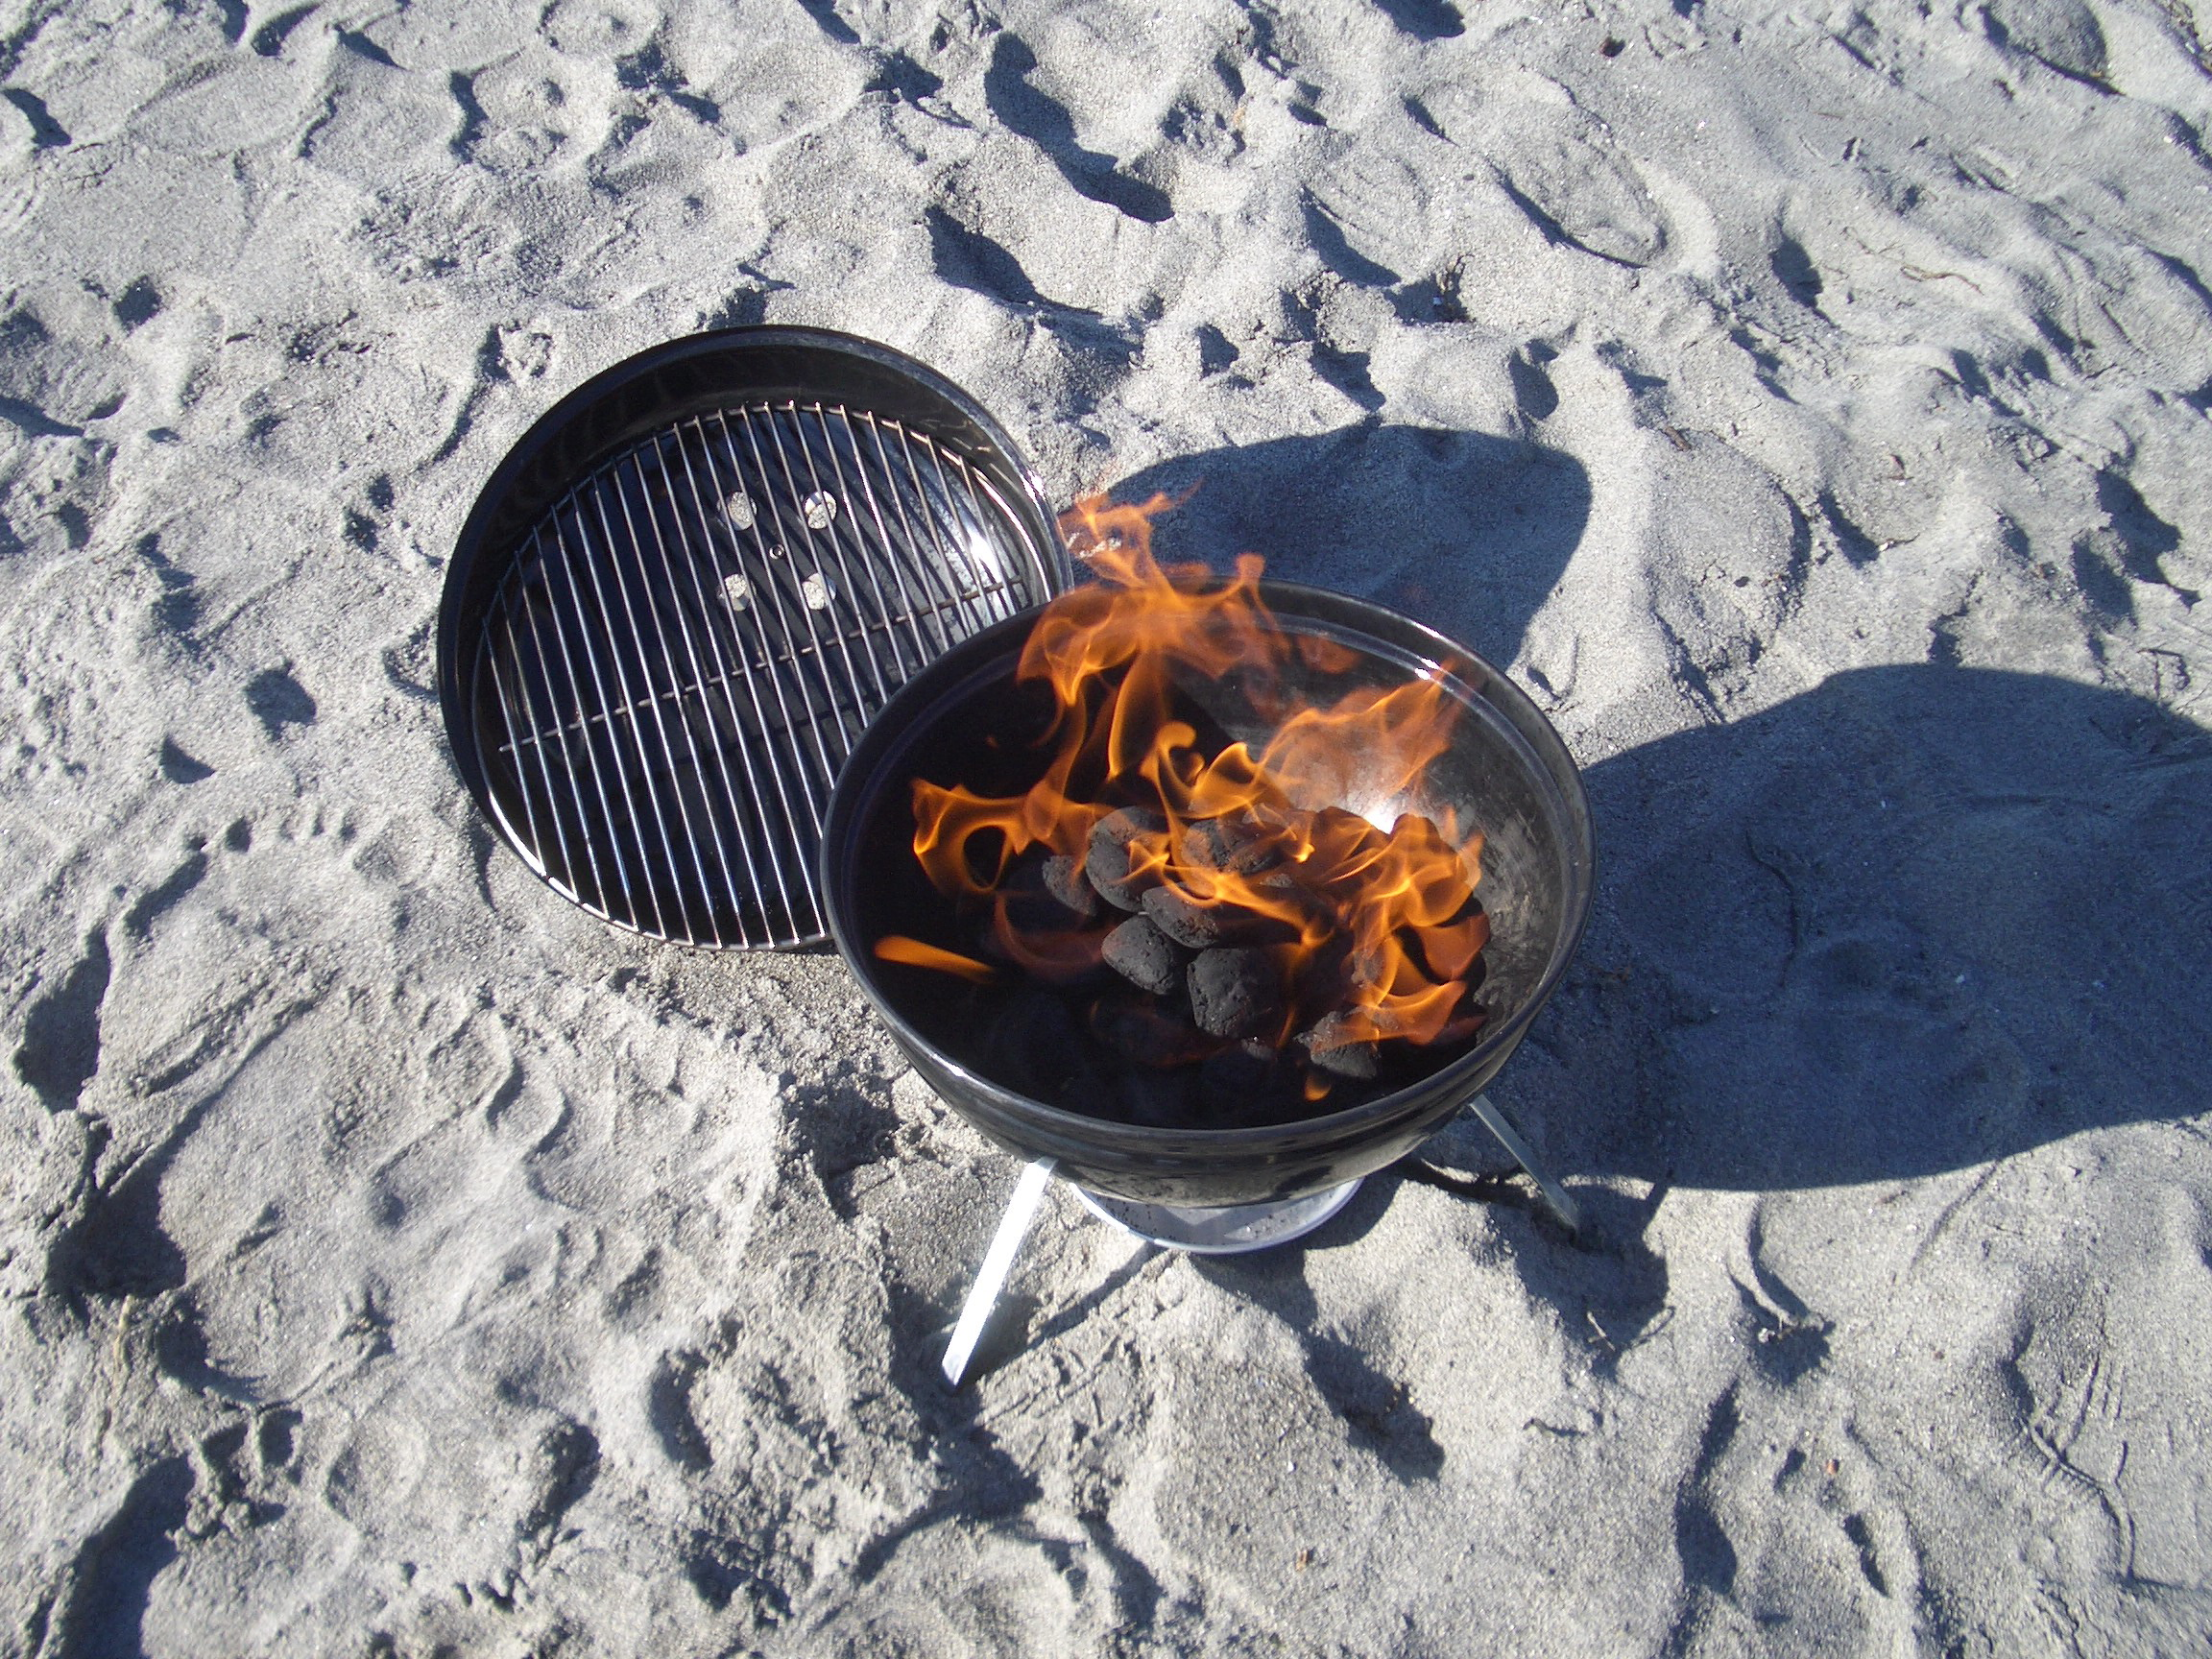 File Grilling On The Beach In February Jpg Wikimedia Commons